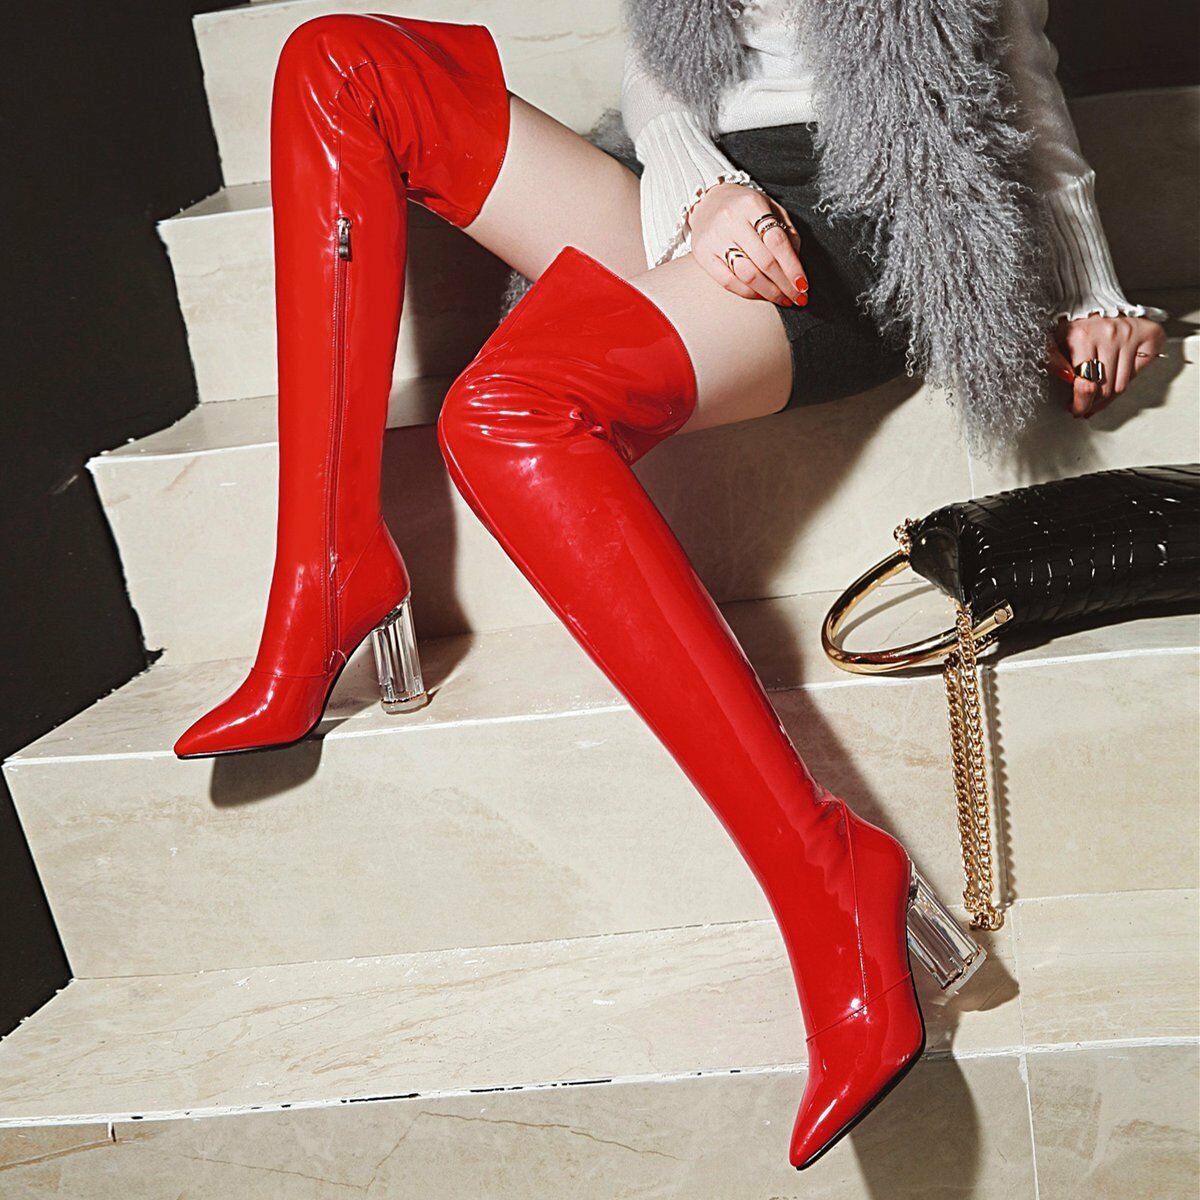 Women's Patent Leather Leather Leather High Heel Over The Knee Thigh Boots NIghtclub Sexy shoes 67bcc2